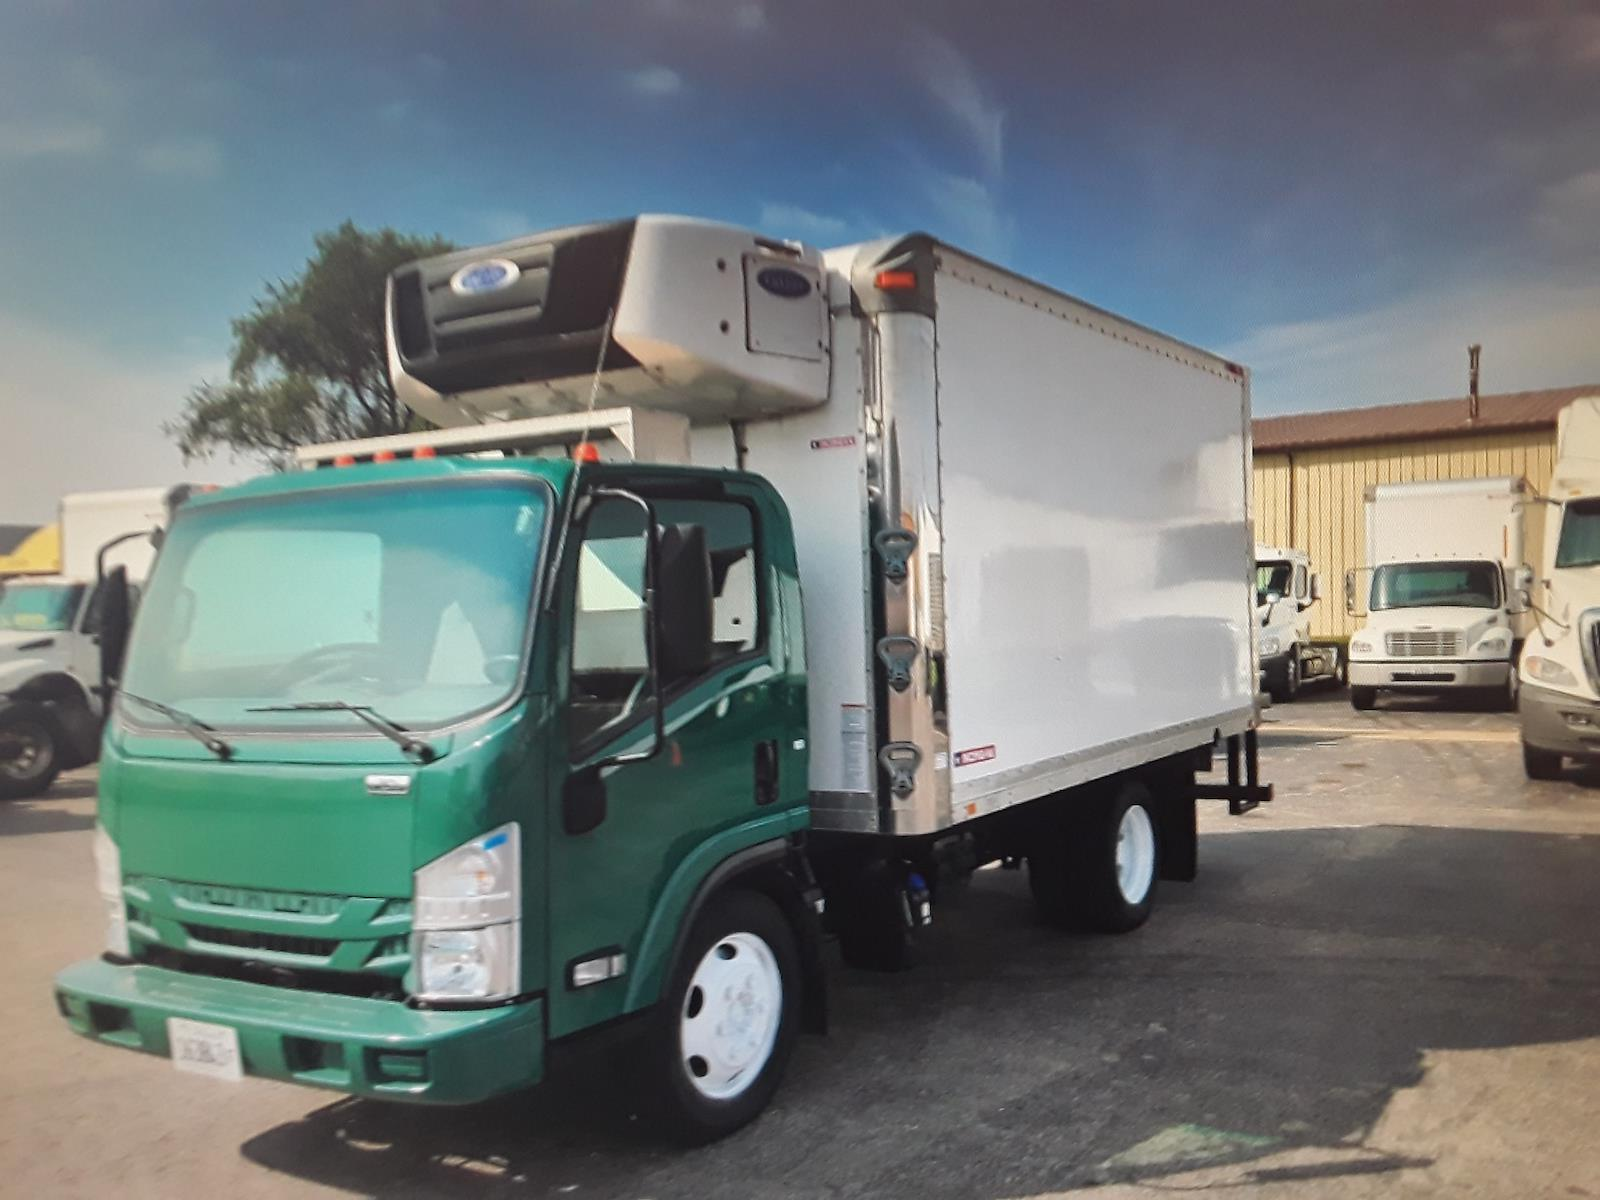 2016 Isuzu NPR-XD Regular Cab 4x2, Refrigerated Body #653702 - photo 1